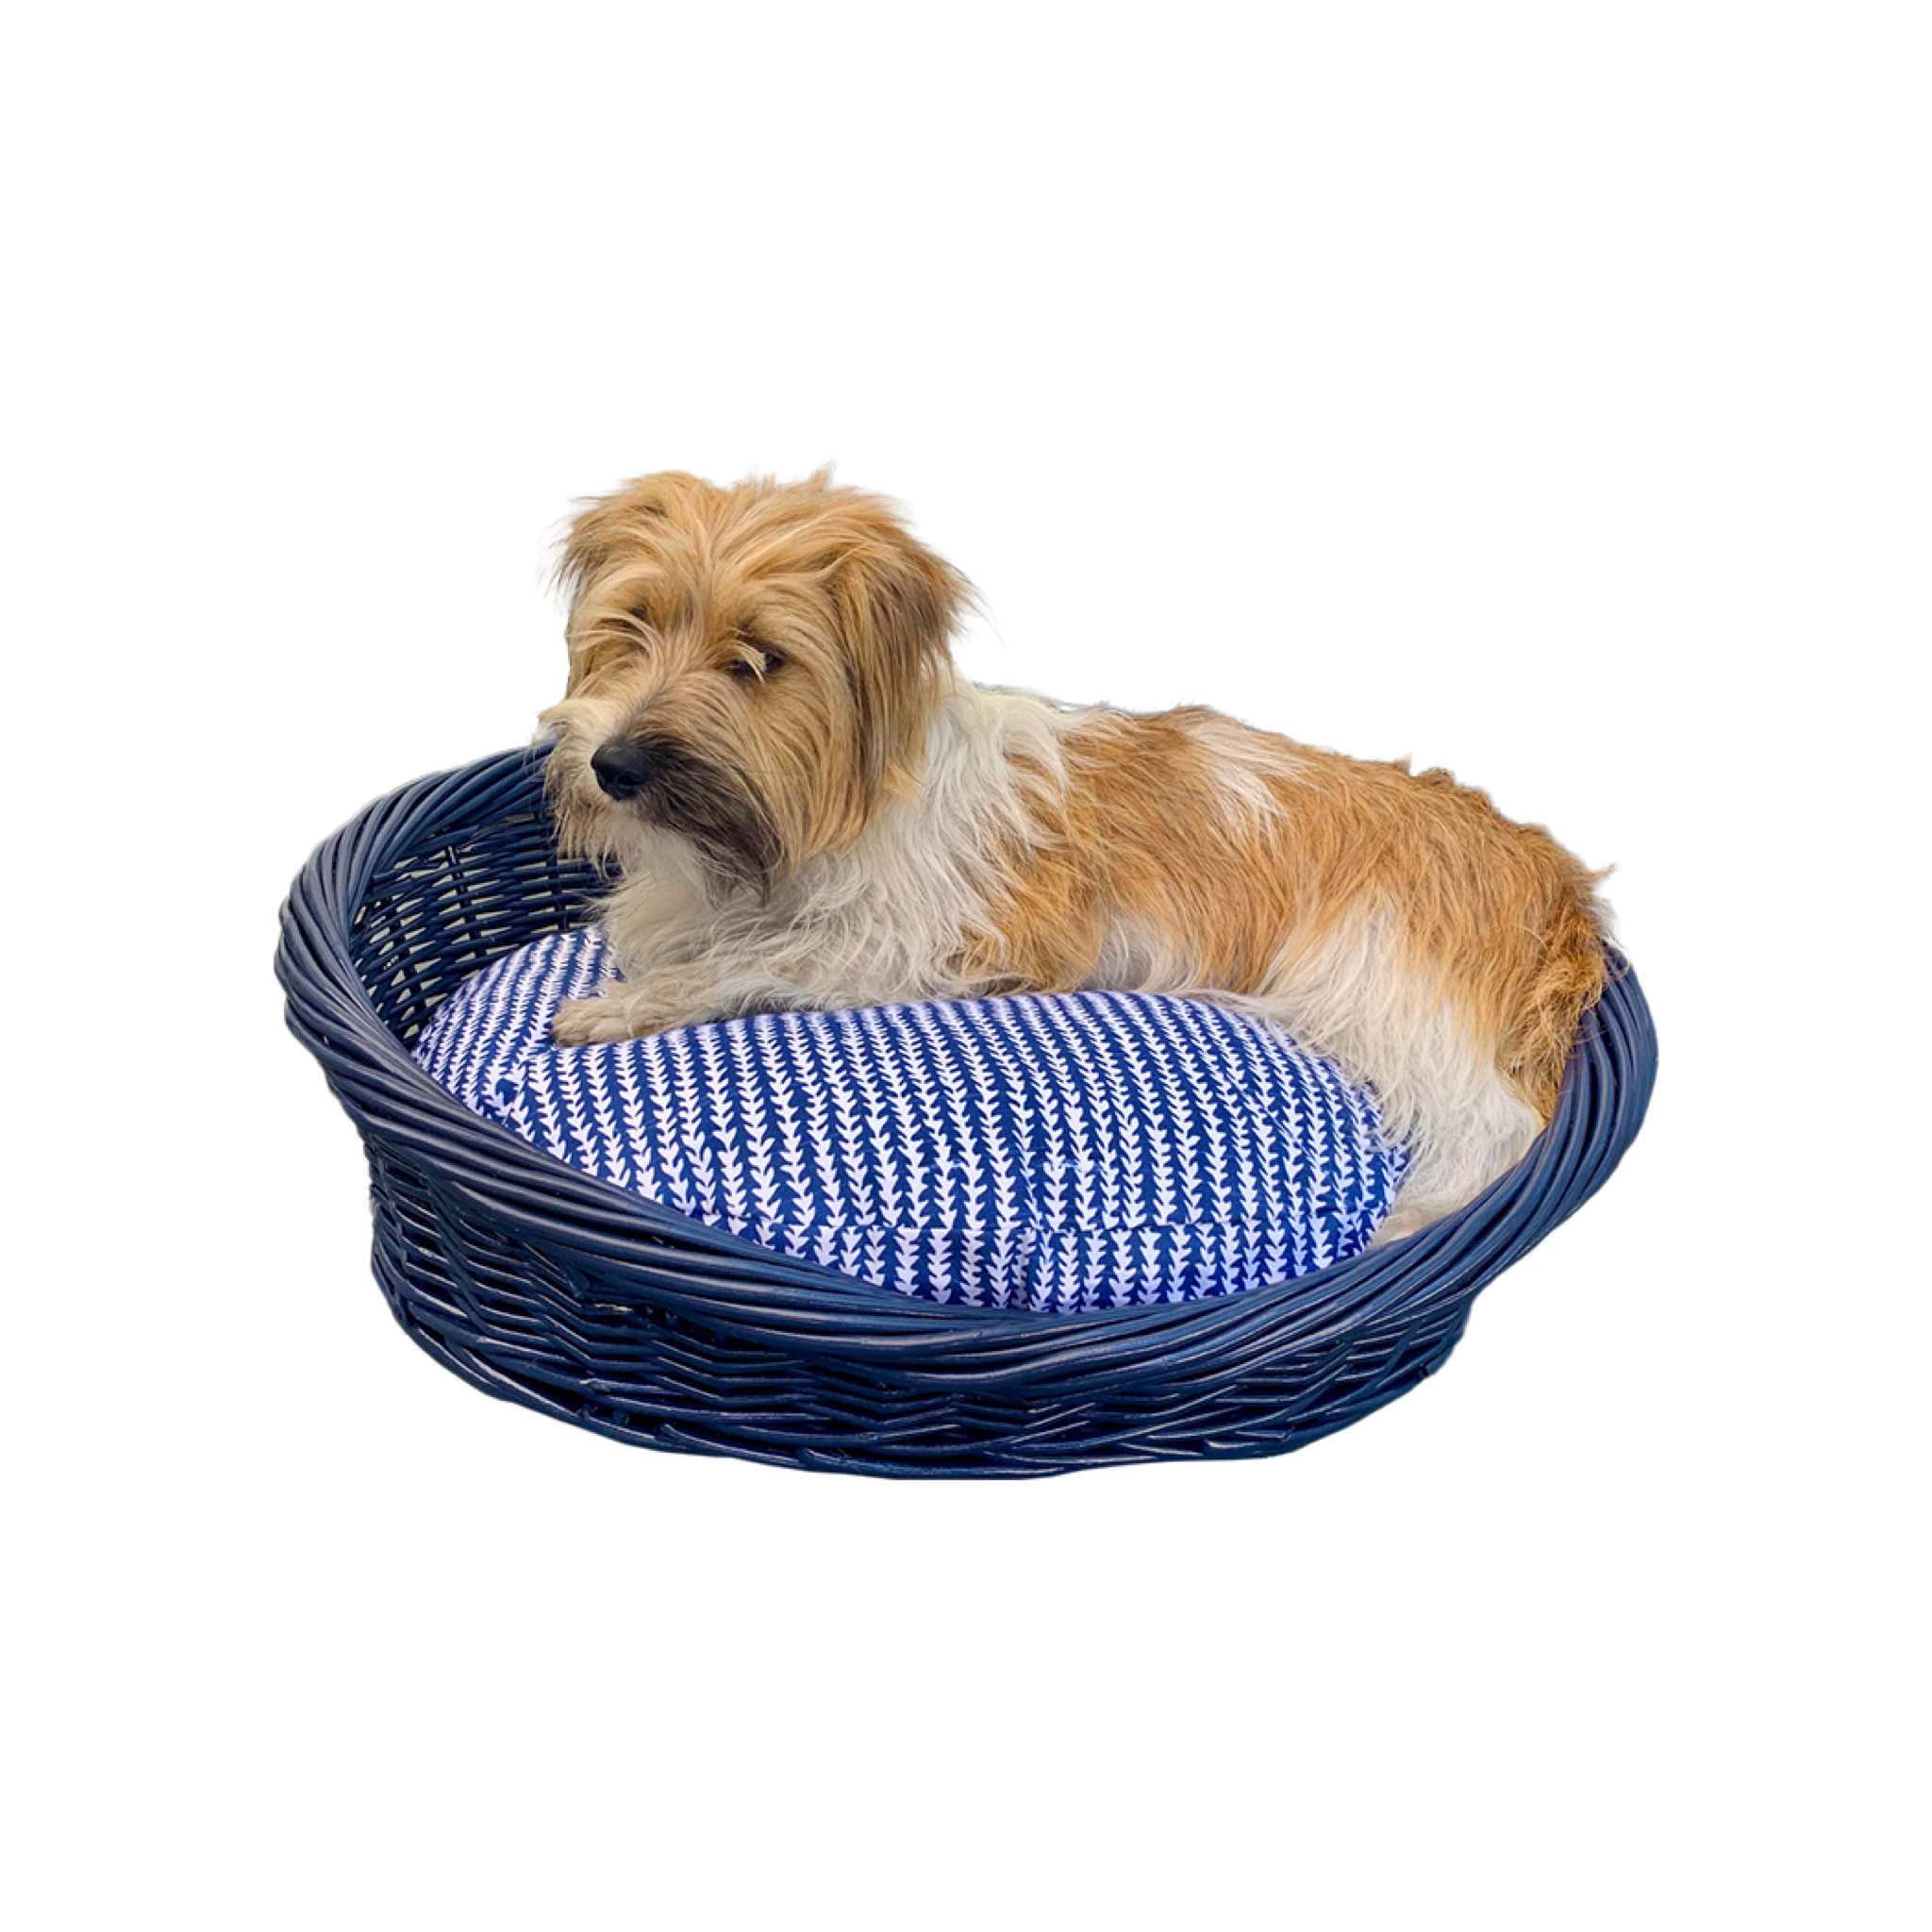 Caper on the small bundle with Bailey Fabric and Navy Basket